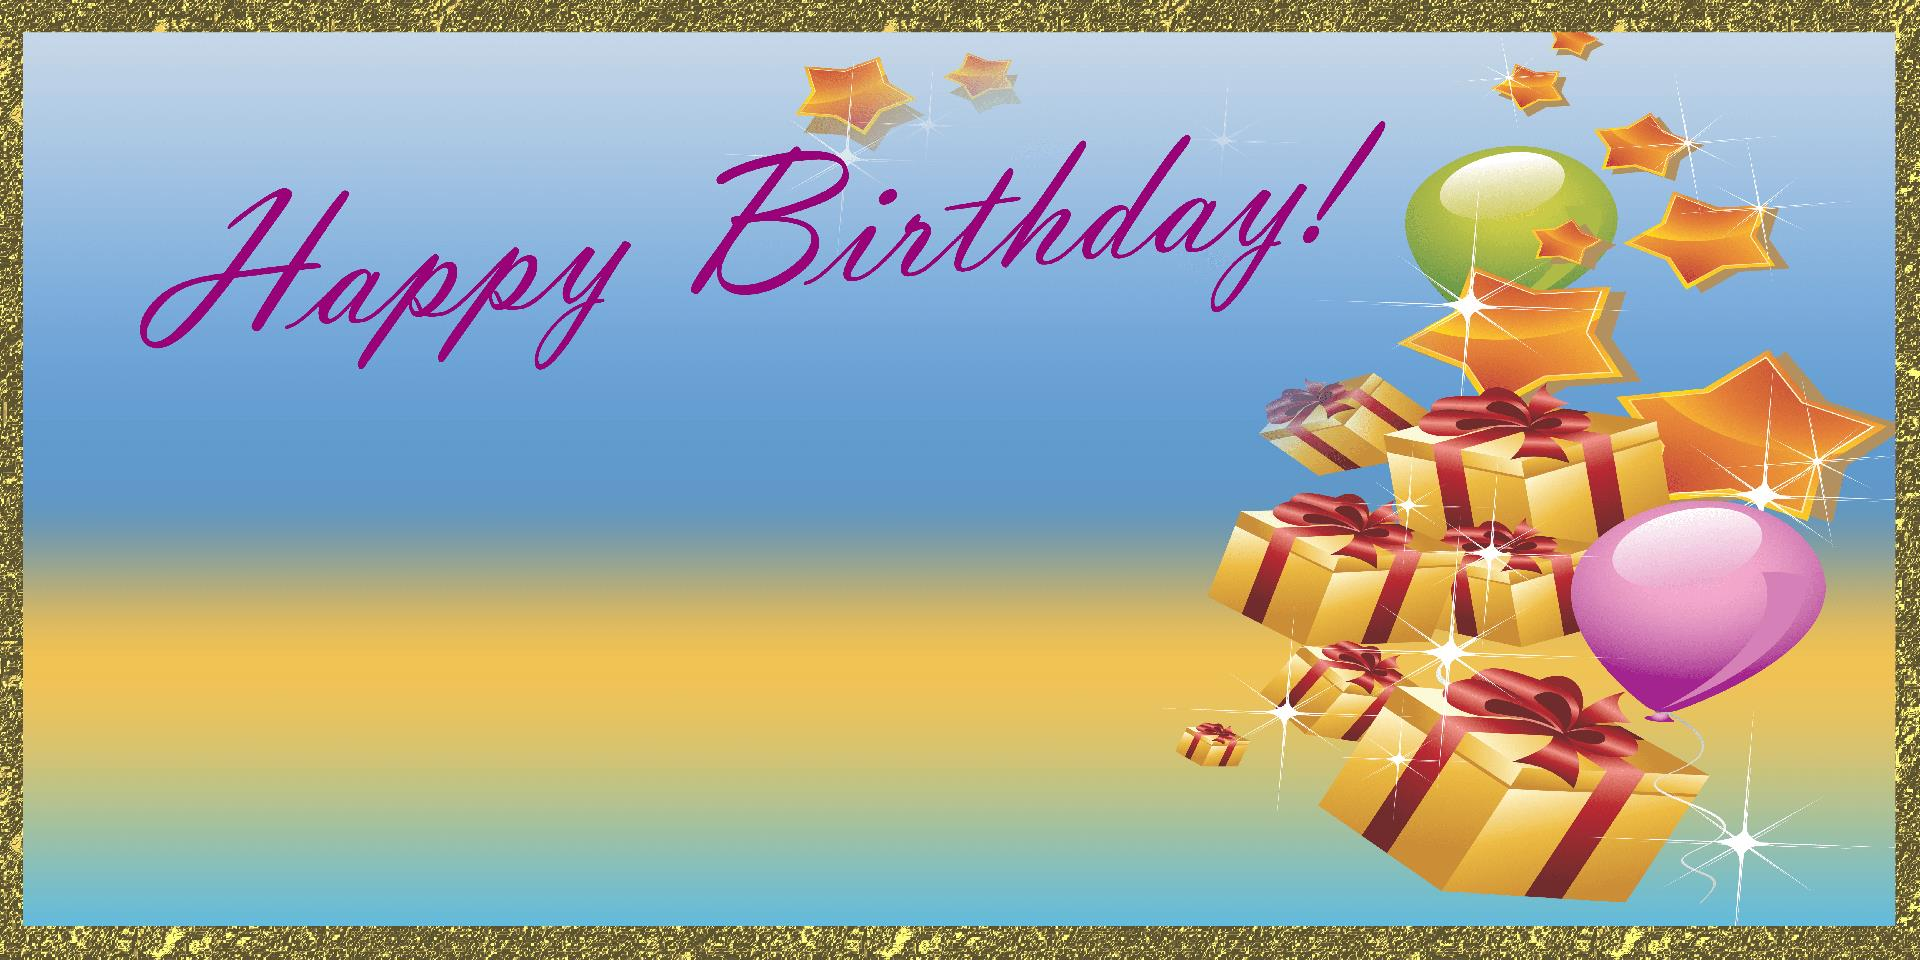 birthday banners with photos ; Happy-Birthday-Banner-Gift-Stars-Gold-1920x960